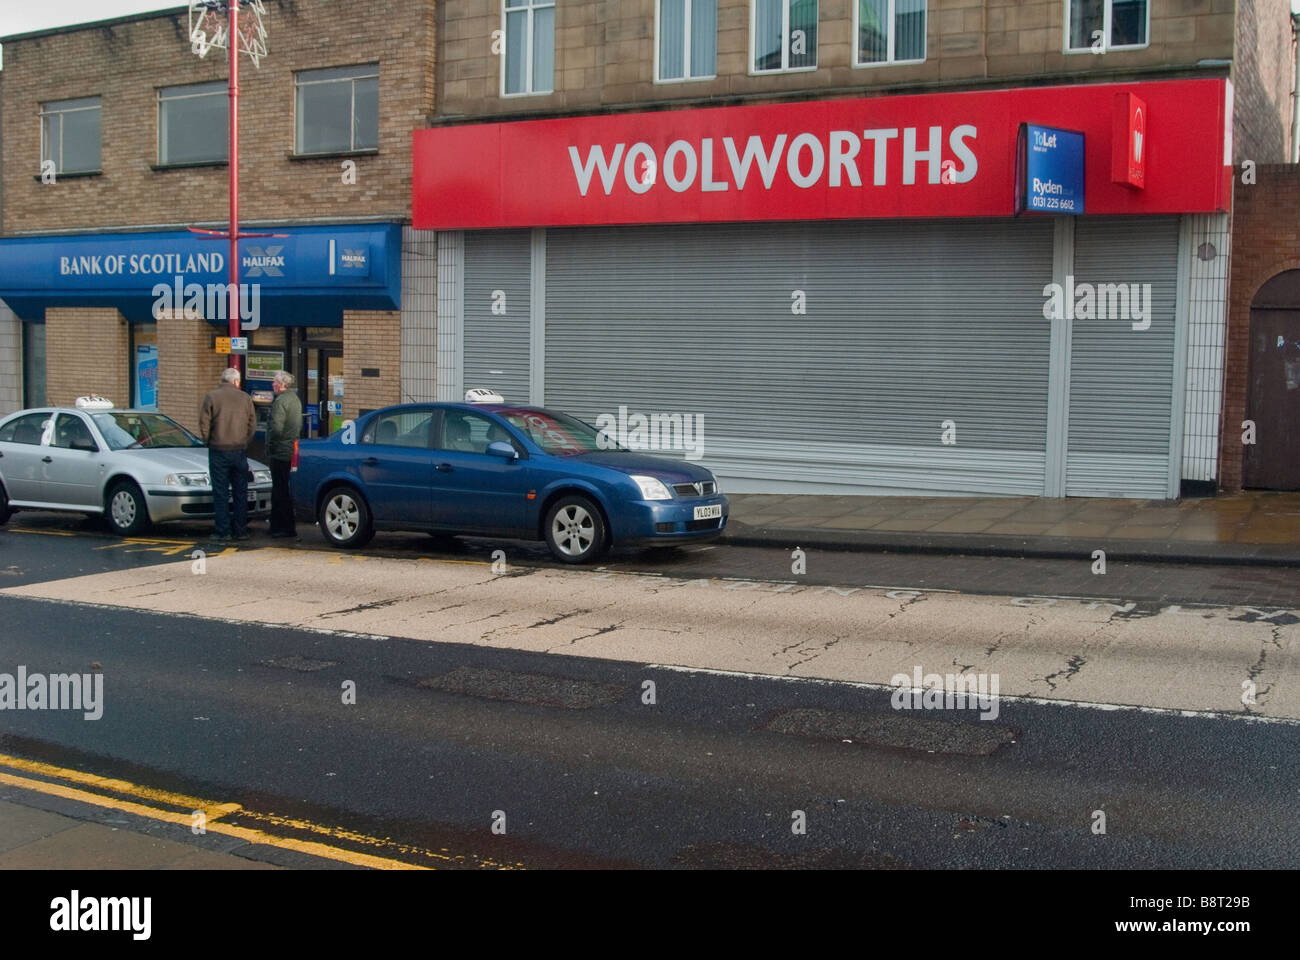 This is a photograph of the Woolworths shop that was located in Cowdenbeath High Street in the county of Fife, Scotland. - Stock Image